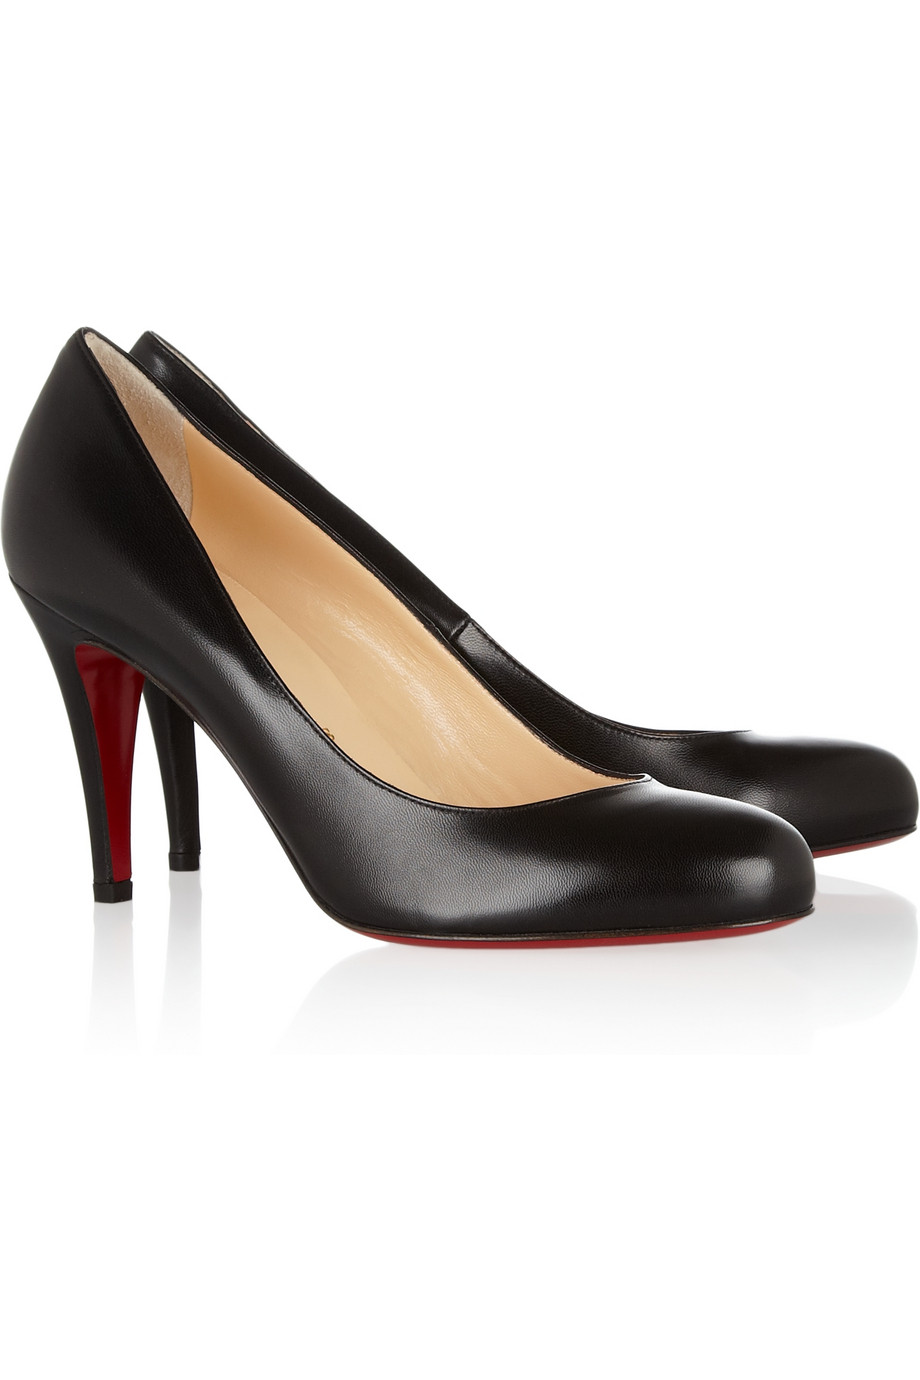 Lyst Christian Louboutin Ron Ron 85 Leather Pumps In Black